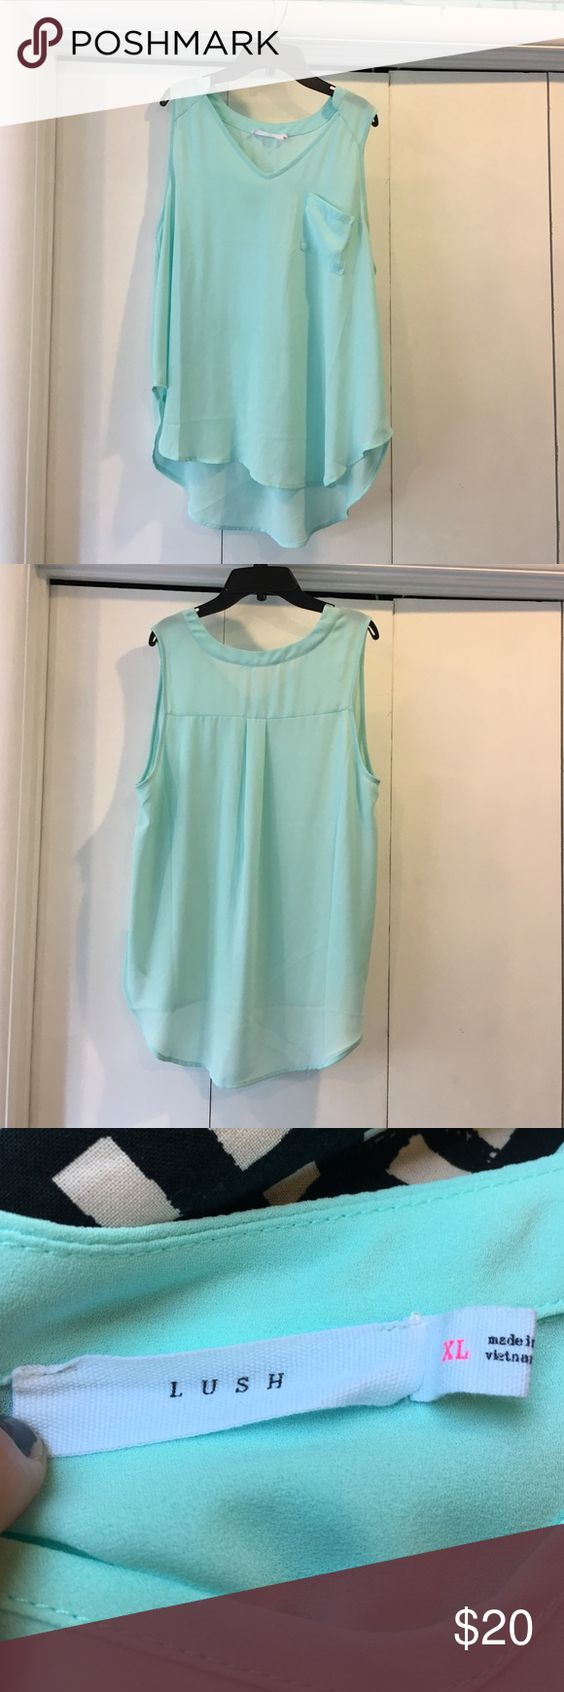 Mint tank top Mint tank top! Super cute with jeans!! In great shape, worn once! Make an offer! Lush Tops Tank Tops